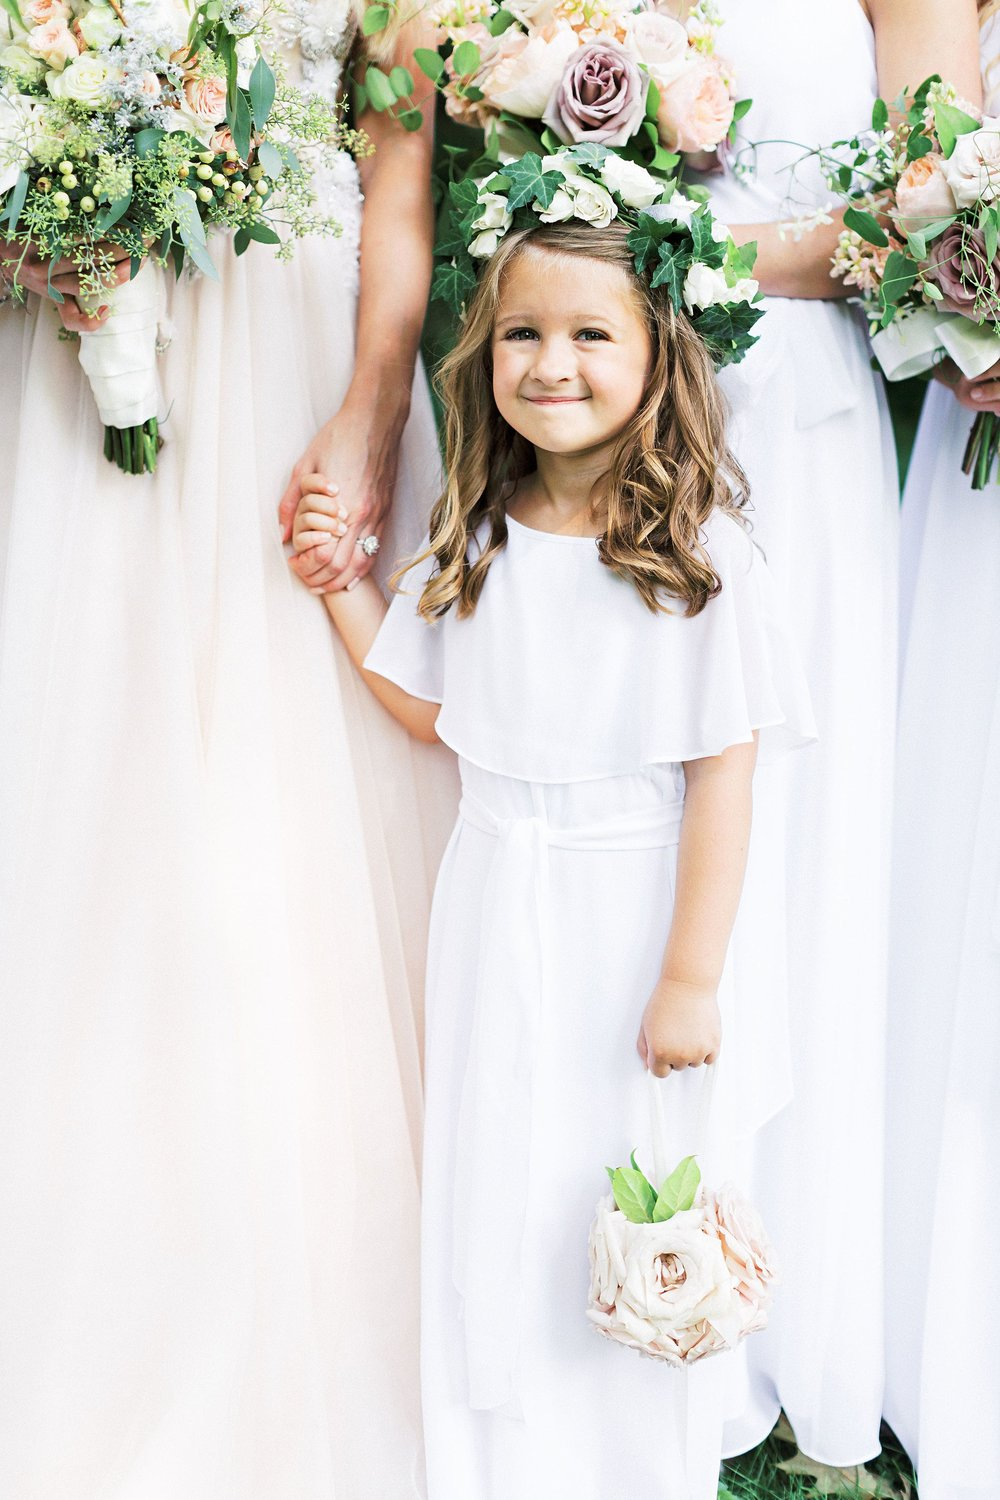 Babes of the Nile by Joanna August flower girl dress Rose in Going to the Chapel ivory chiffon